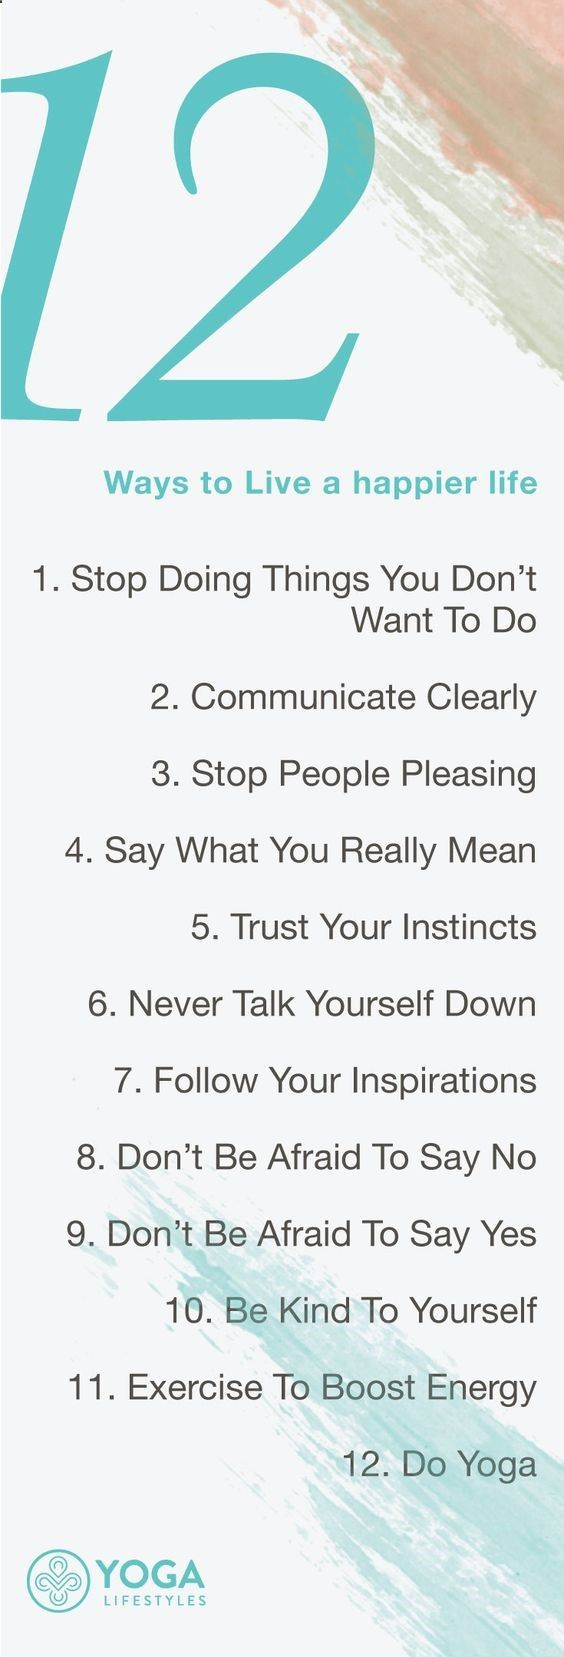 12 Steps to Happiness www.coolenews.com...